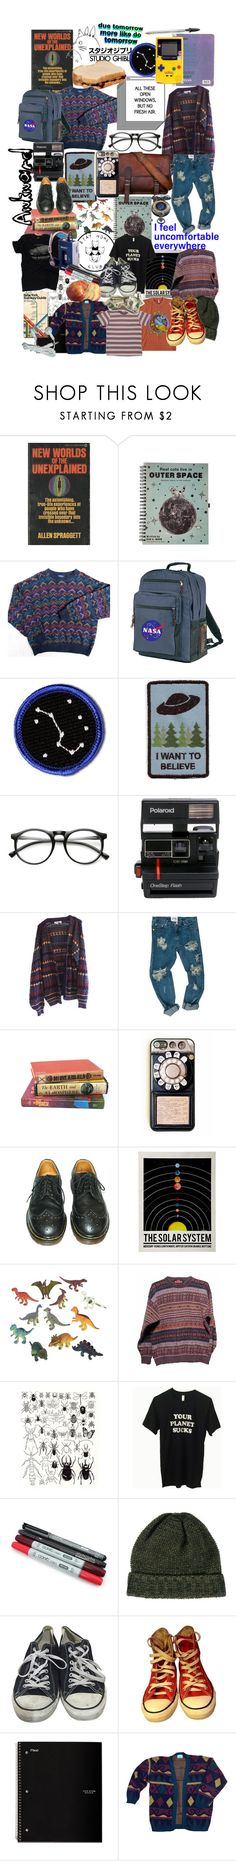 """intp set two"" by eggosandnougat ❤ liked on Polyvore featuring Ghibli, INDIE HAIR, Polaroid, OneTeaspoon, On Your Case, Dr. Martens, Dinosaurs, SELECTED, Converse and Five Star"